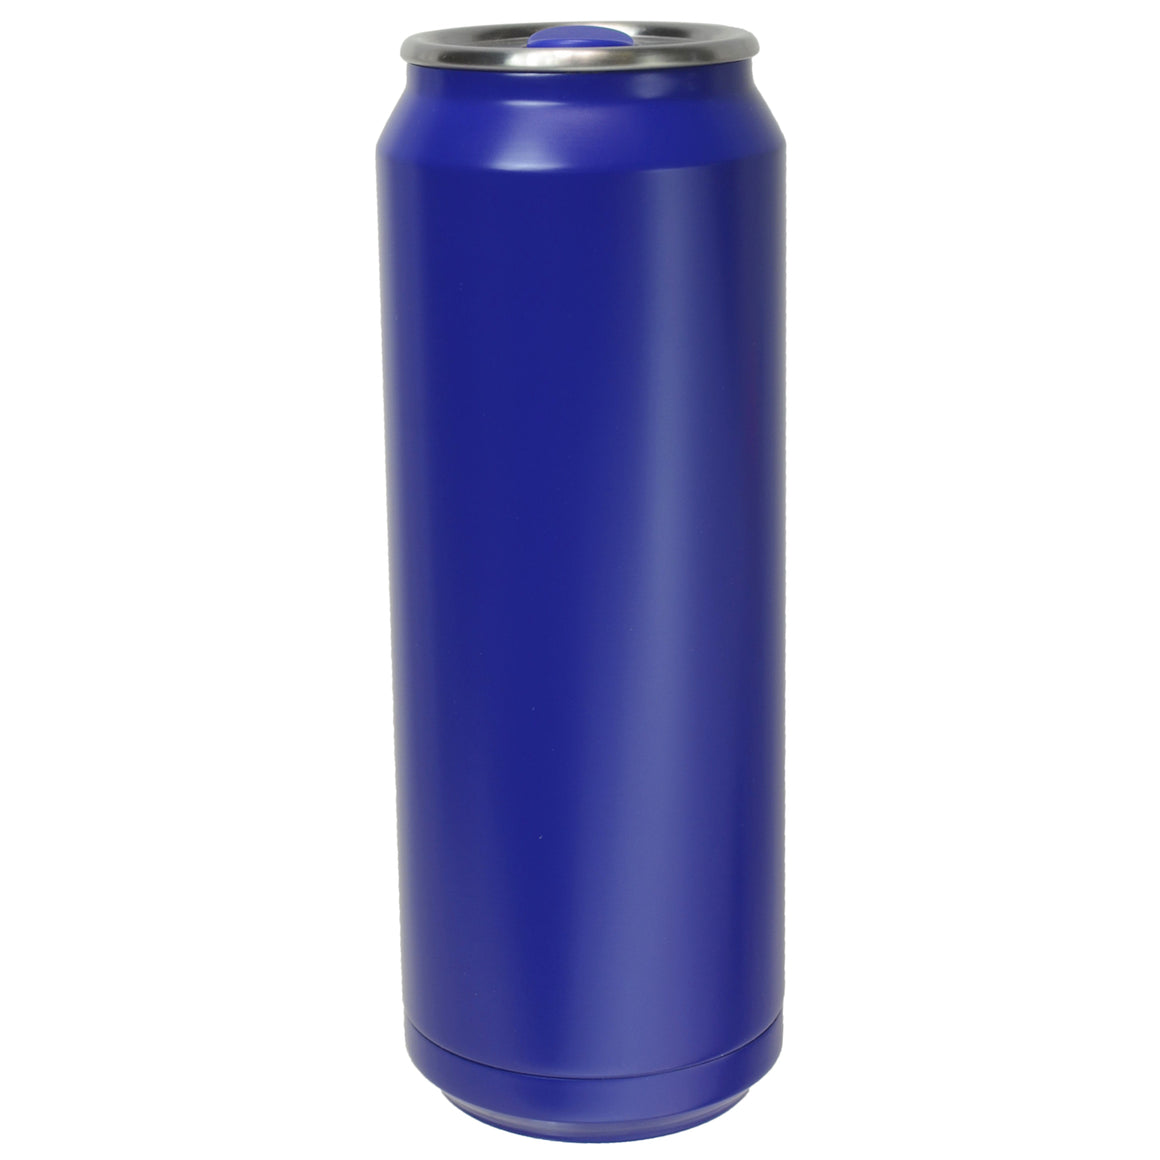 Teal 16 Oz Stainless Steel coolgearcan (Without Straw) at Cool Gear Coolgearcans,Stainless Steel